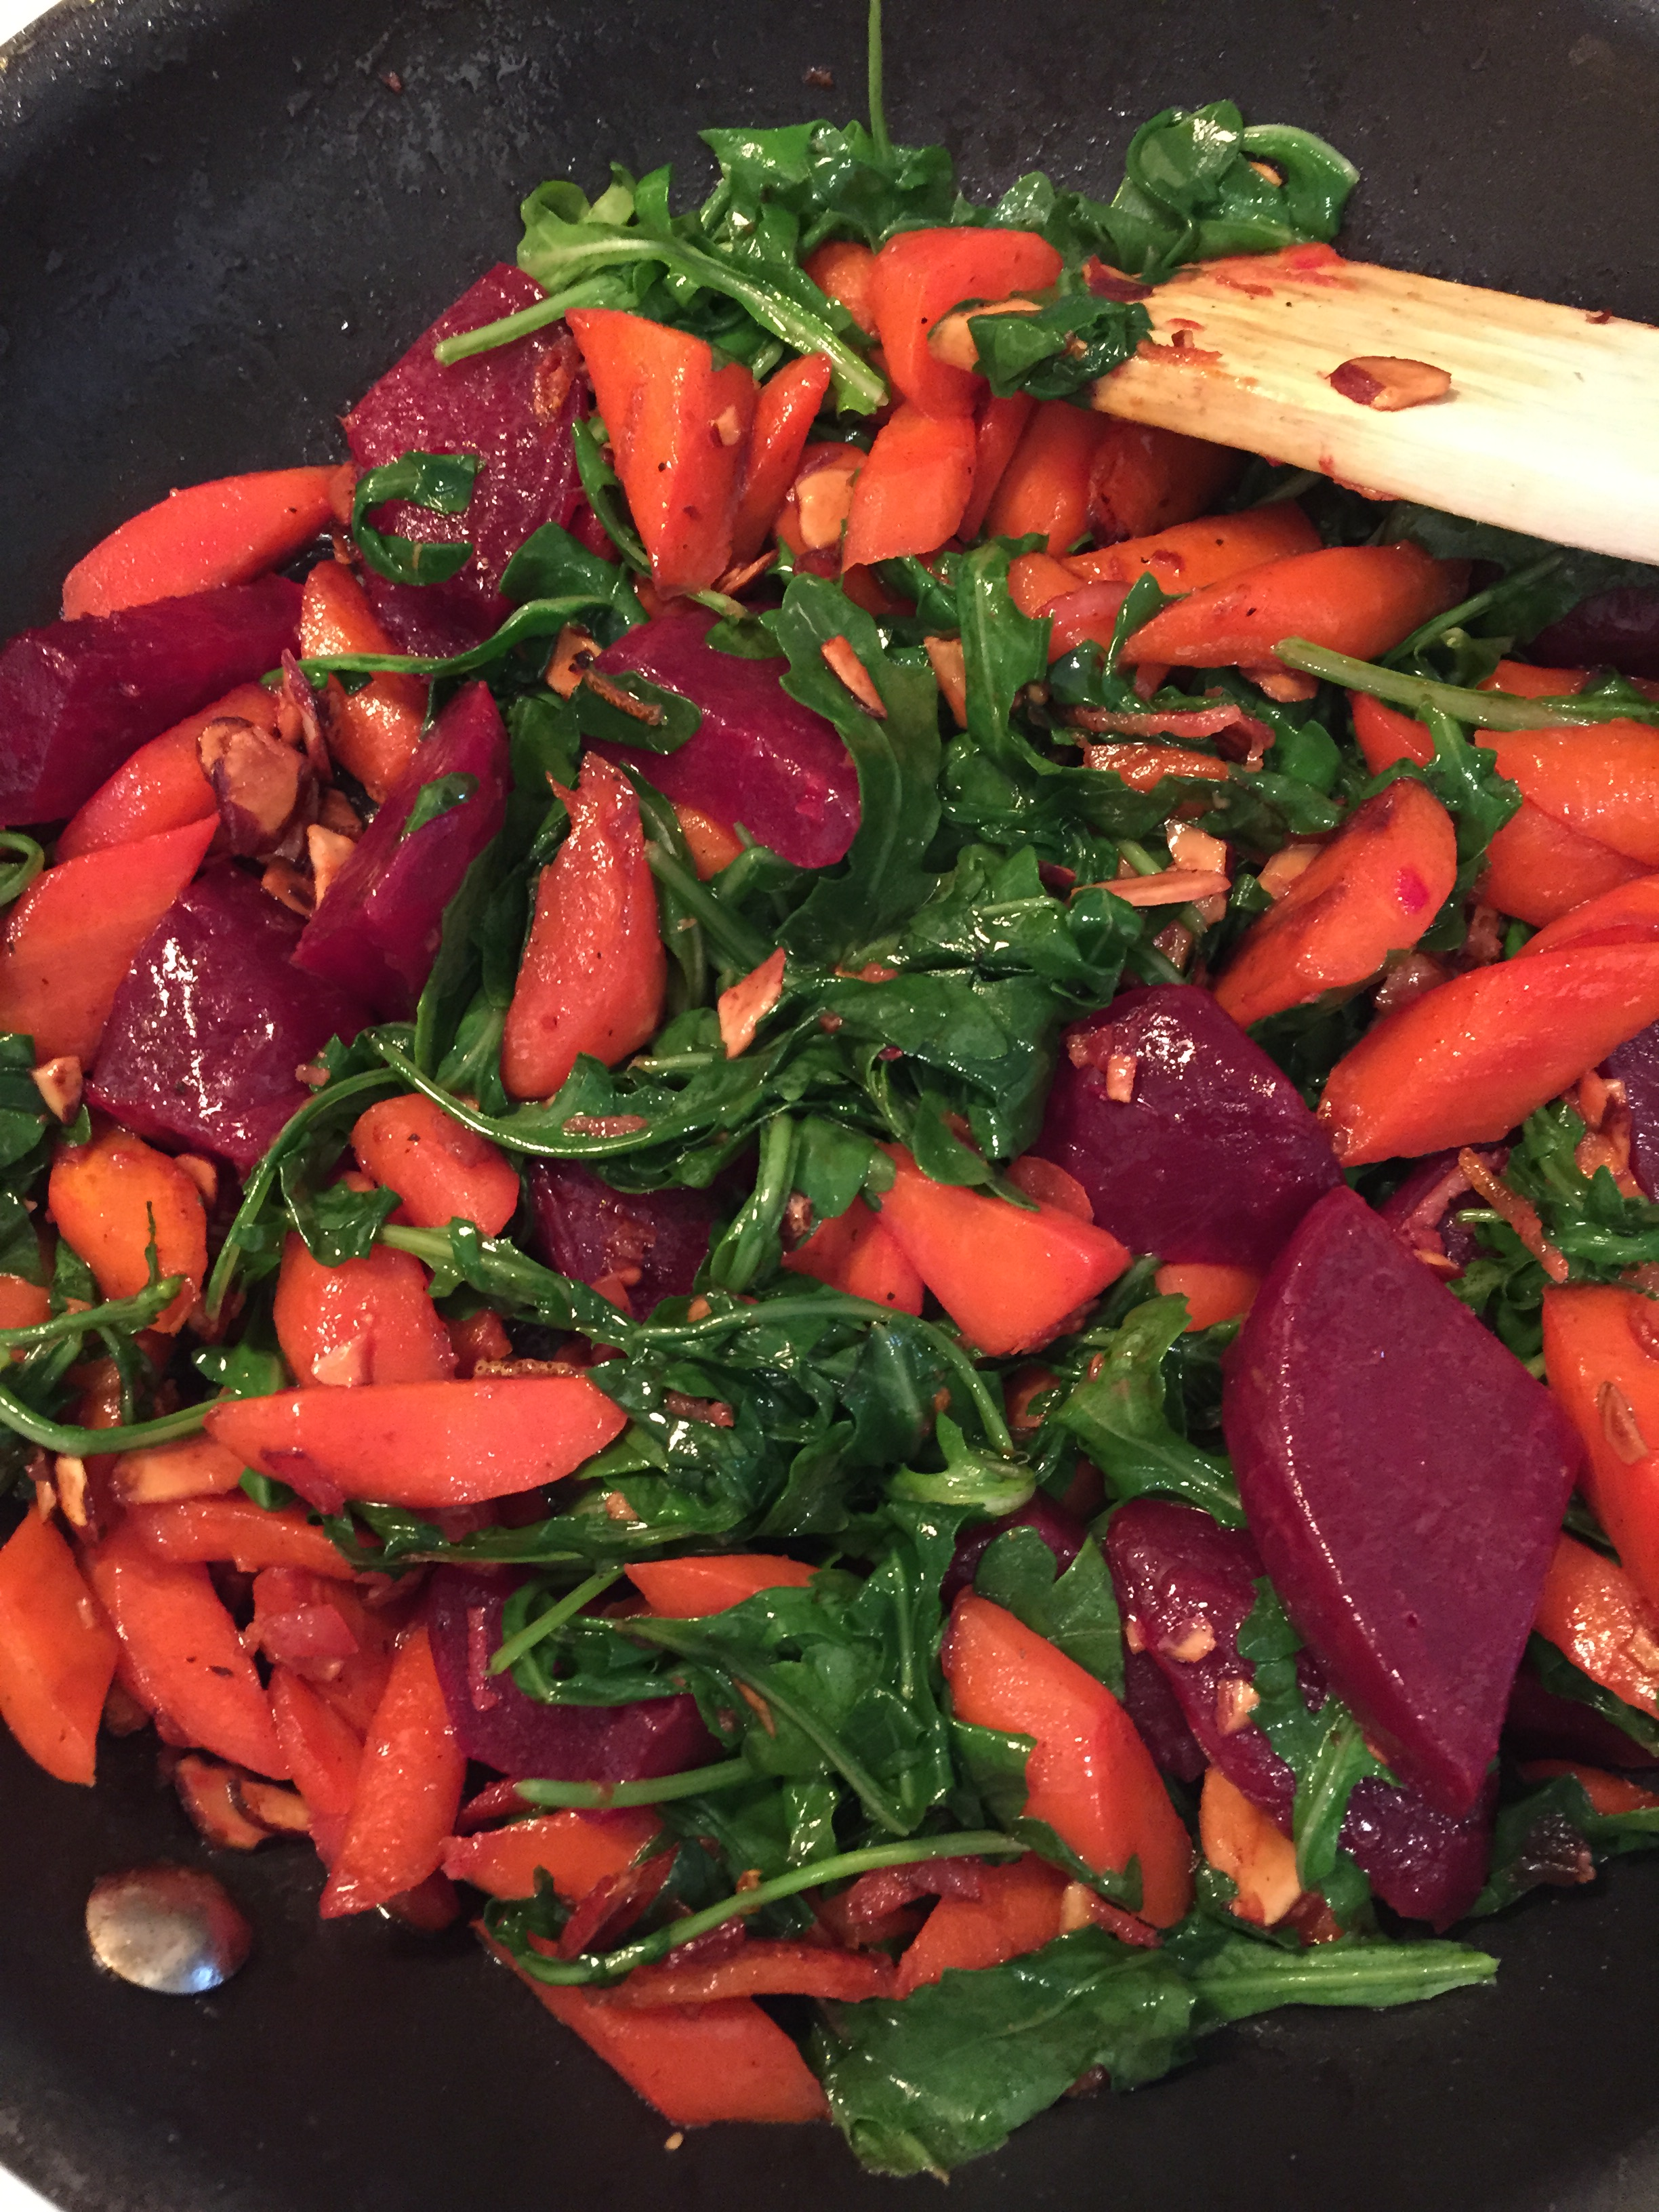 Beets, carrots, almonds, and fresh Arugula provided the perfect counter-balance of textures, colors, and flavors.